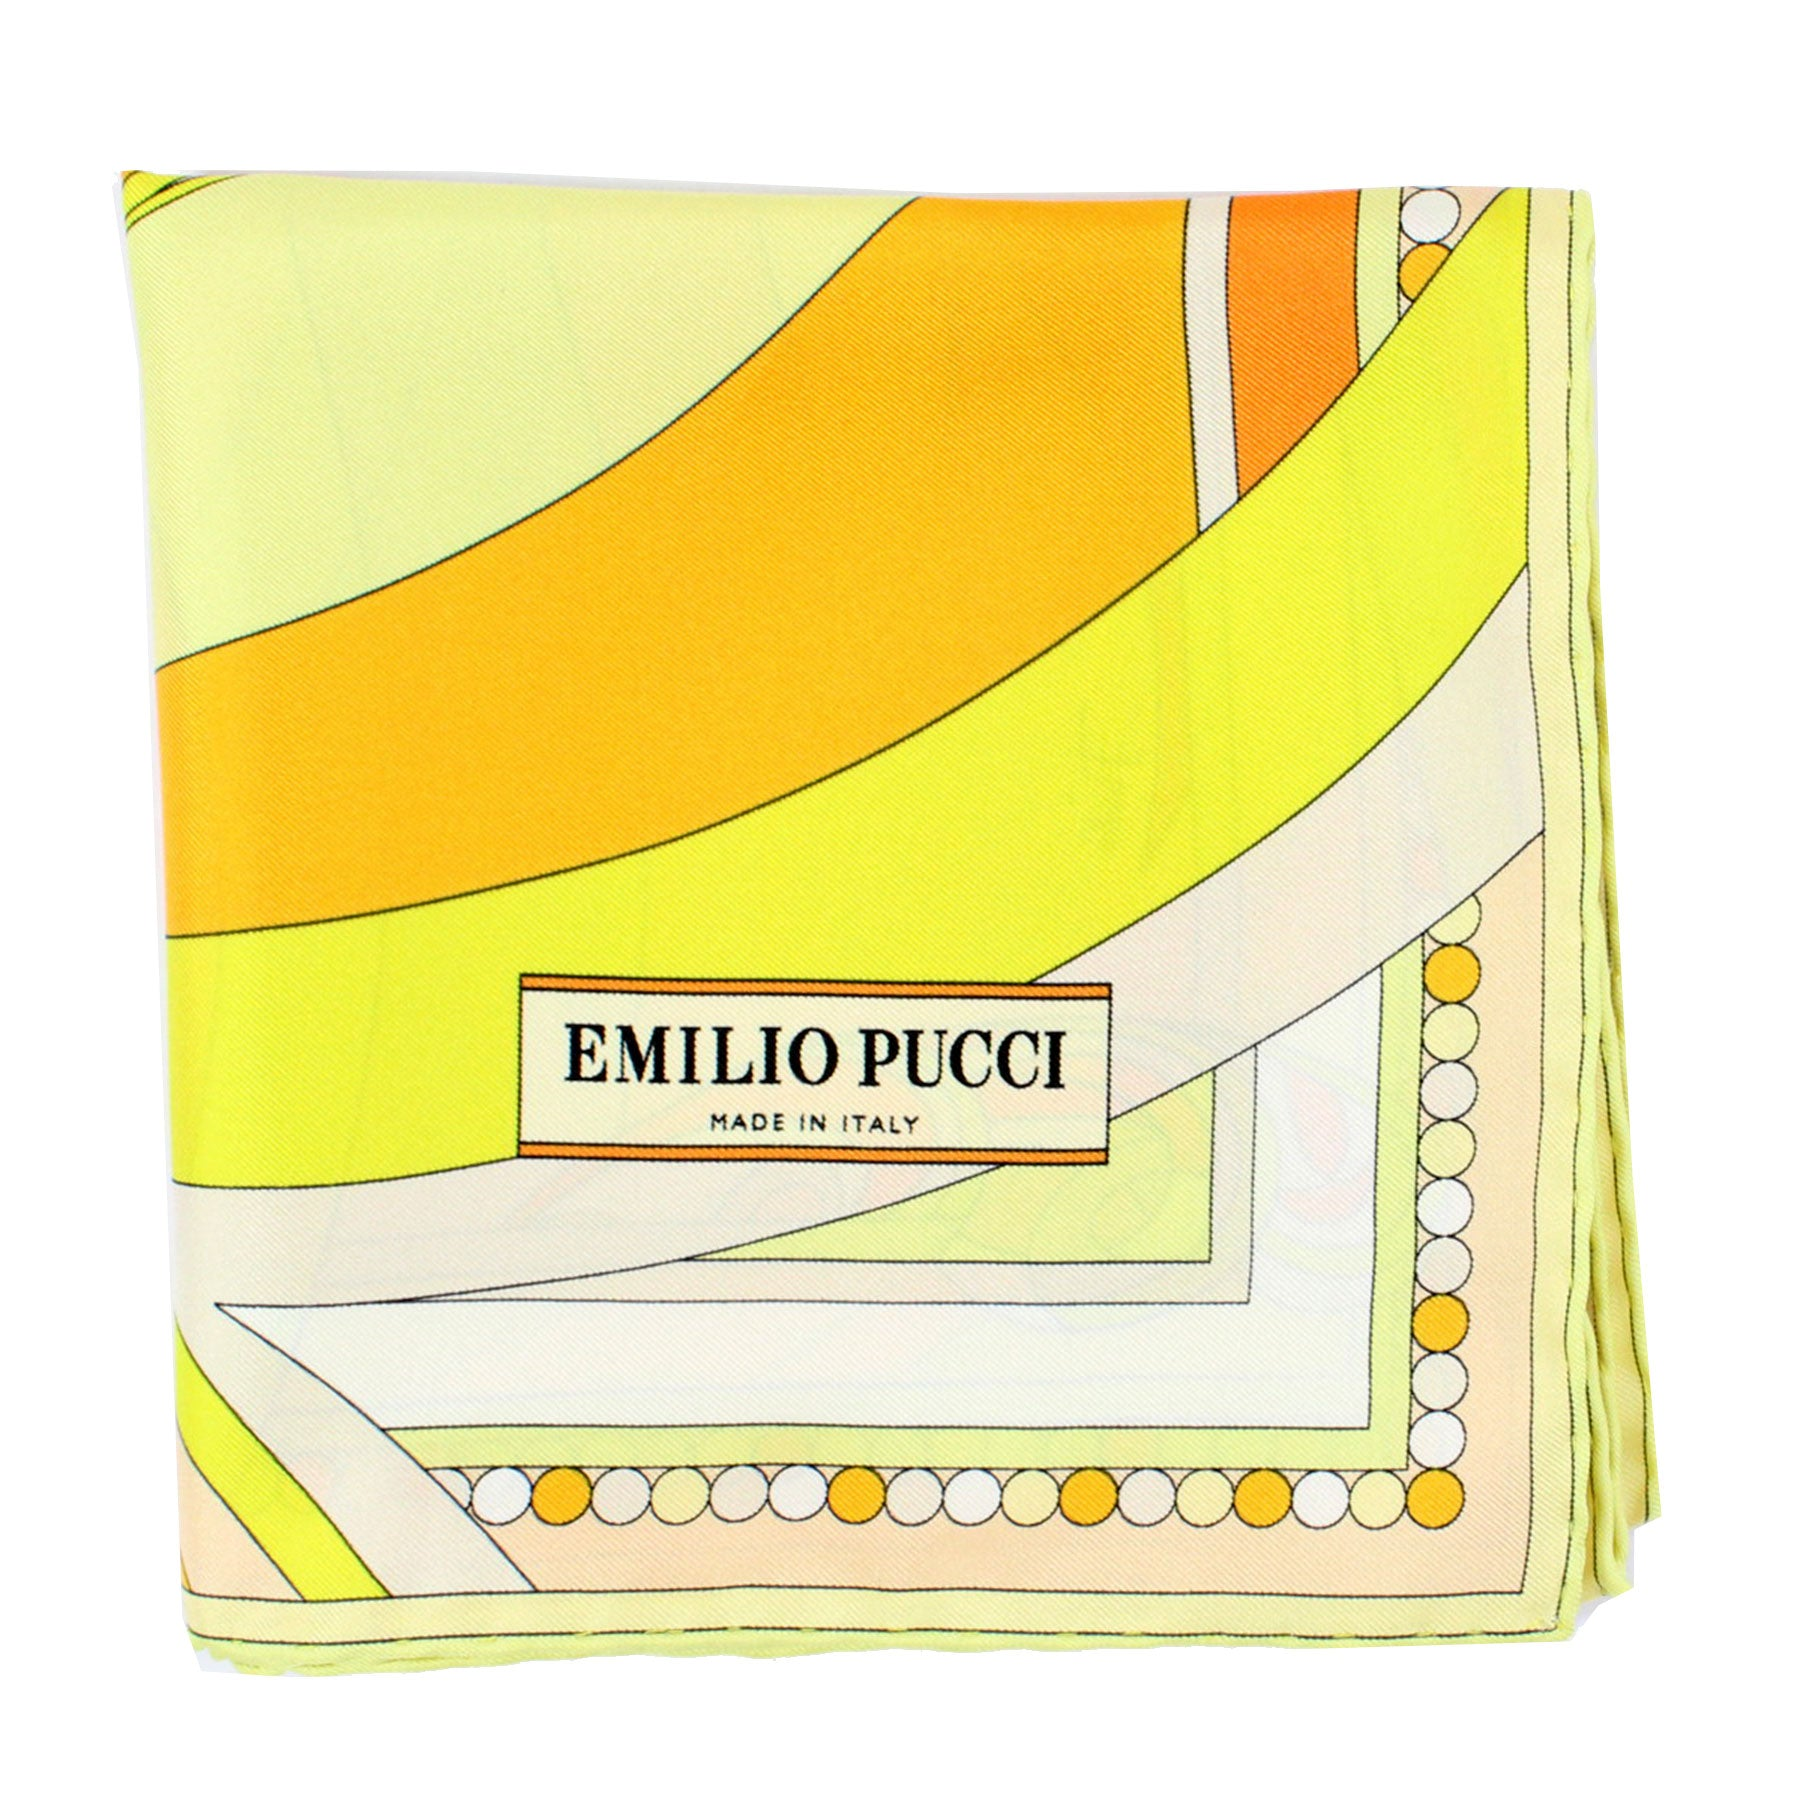 "Emilio Pucci Scarf Yellow Orange Design - Twill Silk 27"" Square Scarf"